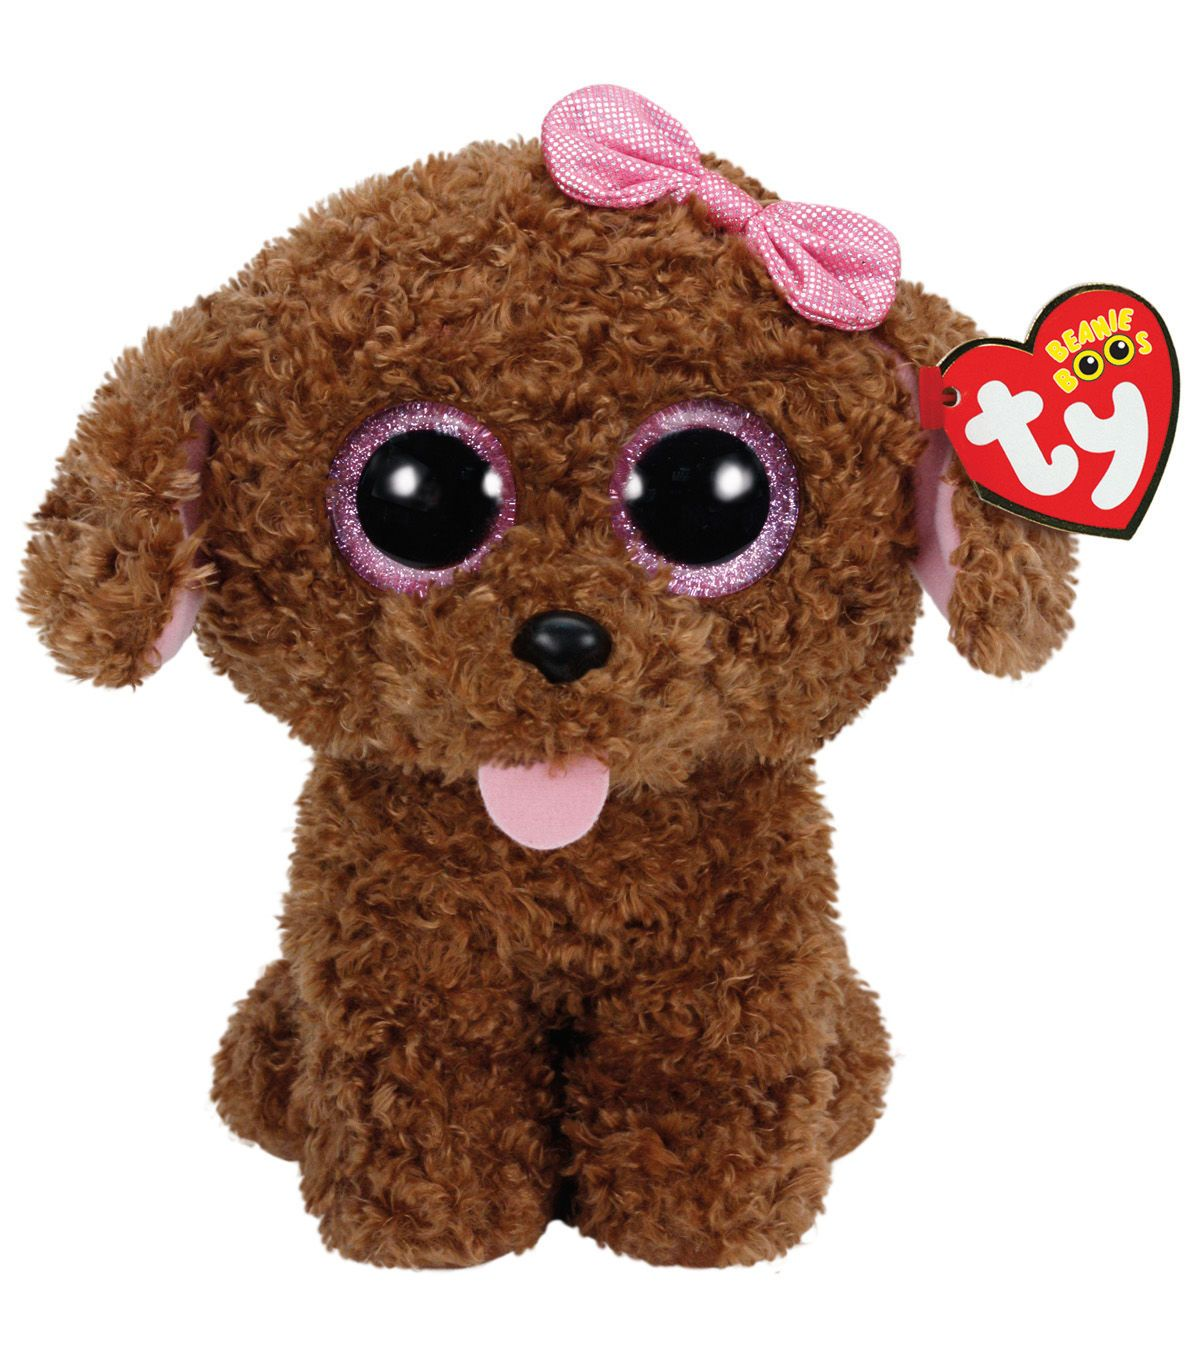 Ty Beanie Boos Maddie The Brown Dog with Bow Plush